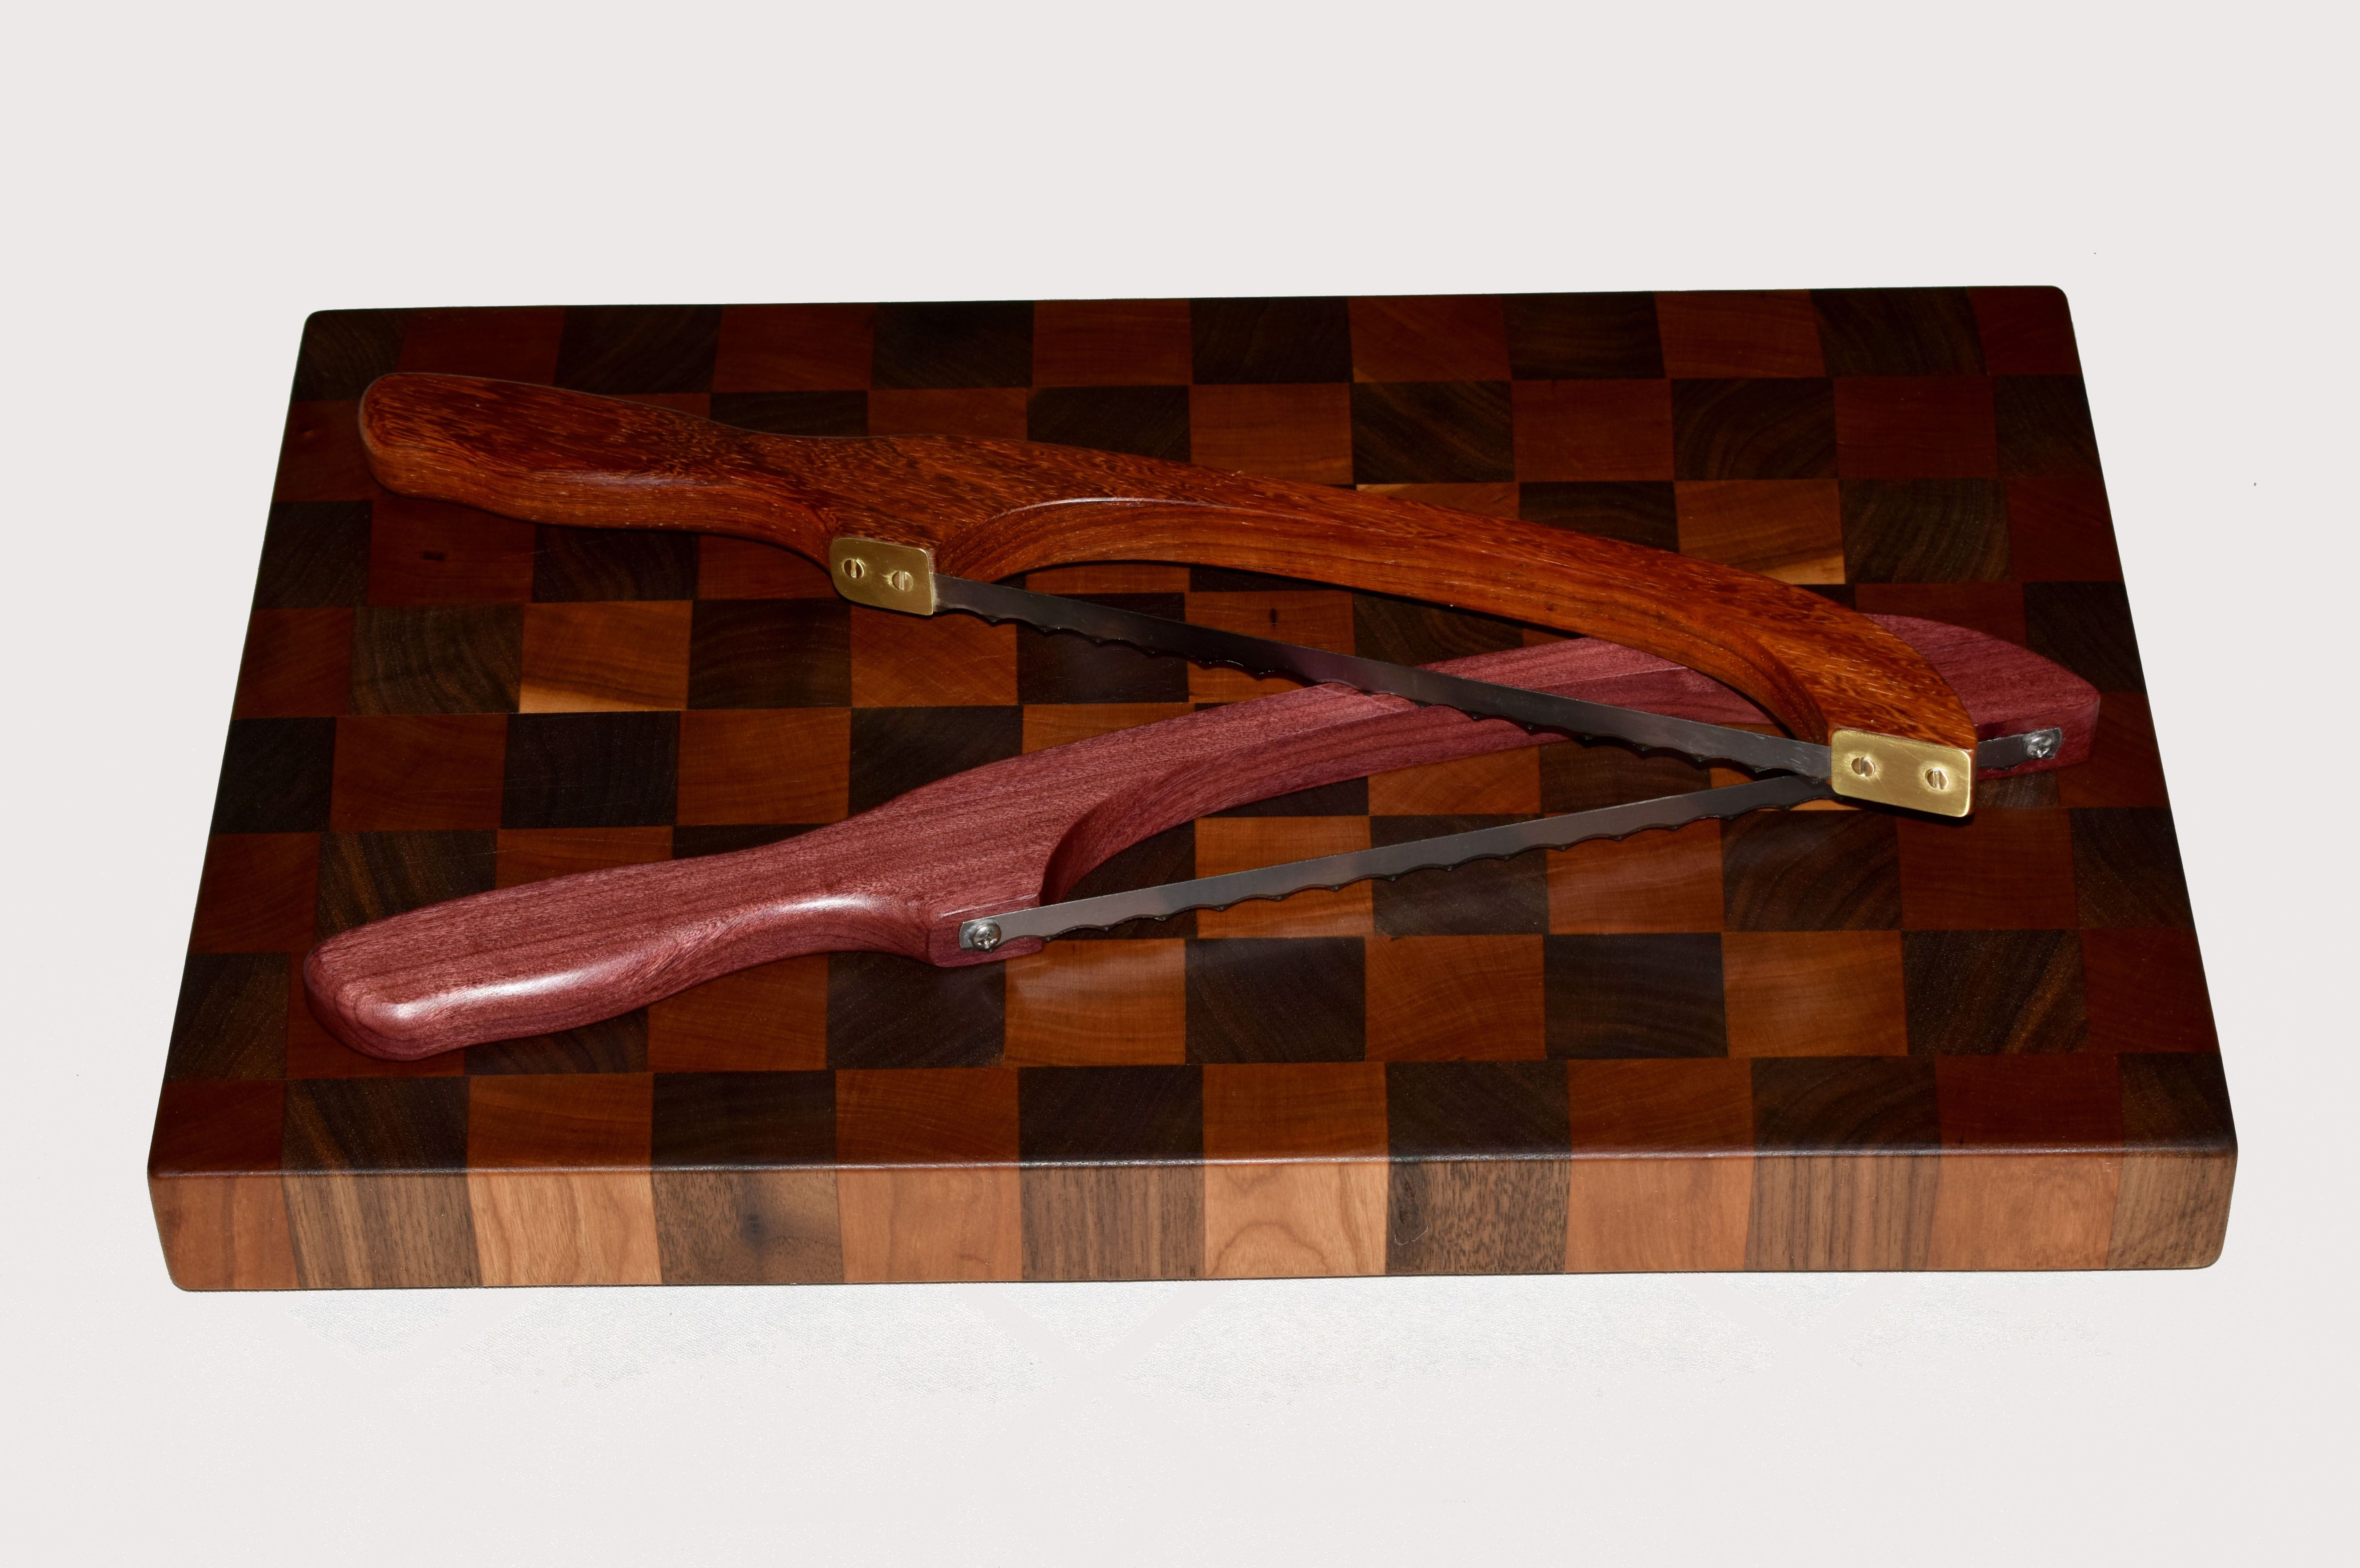 Price 38 The Bow Knife is traditionally designed for